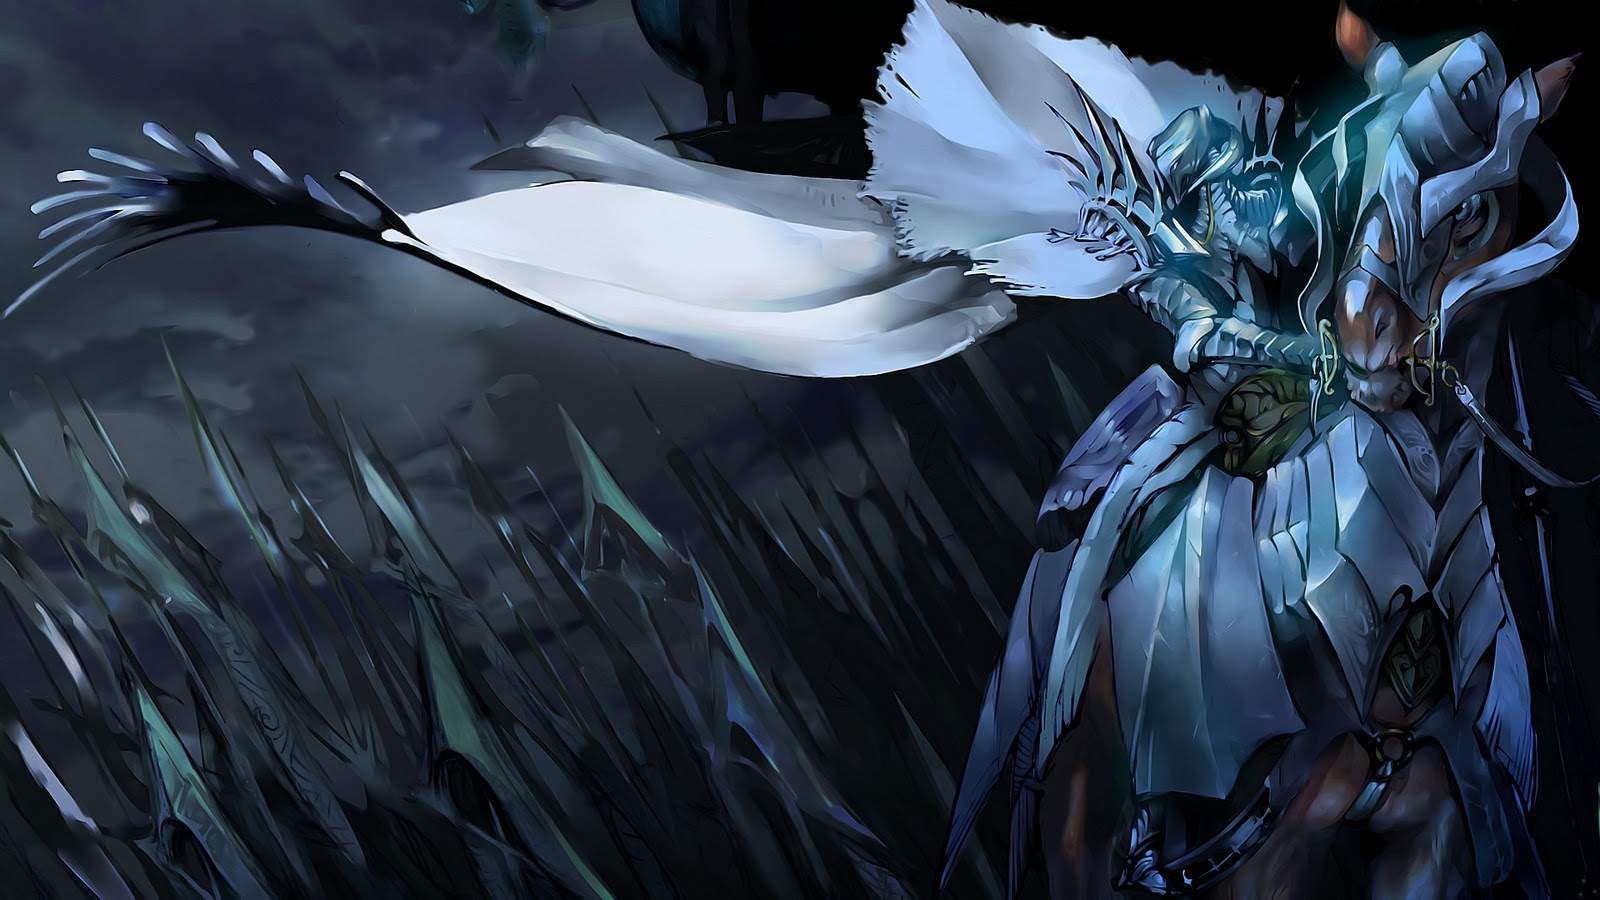 animated wallpapers Fantasy Art wallpapers 3D imagesFlash animation 1600x900